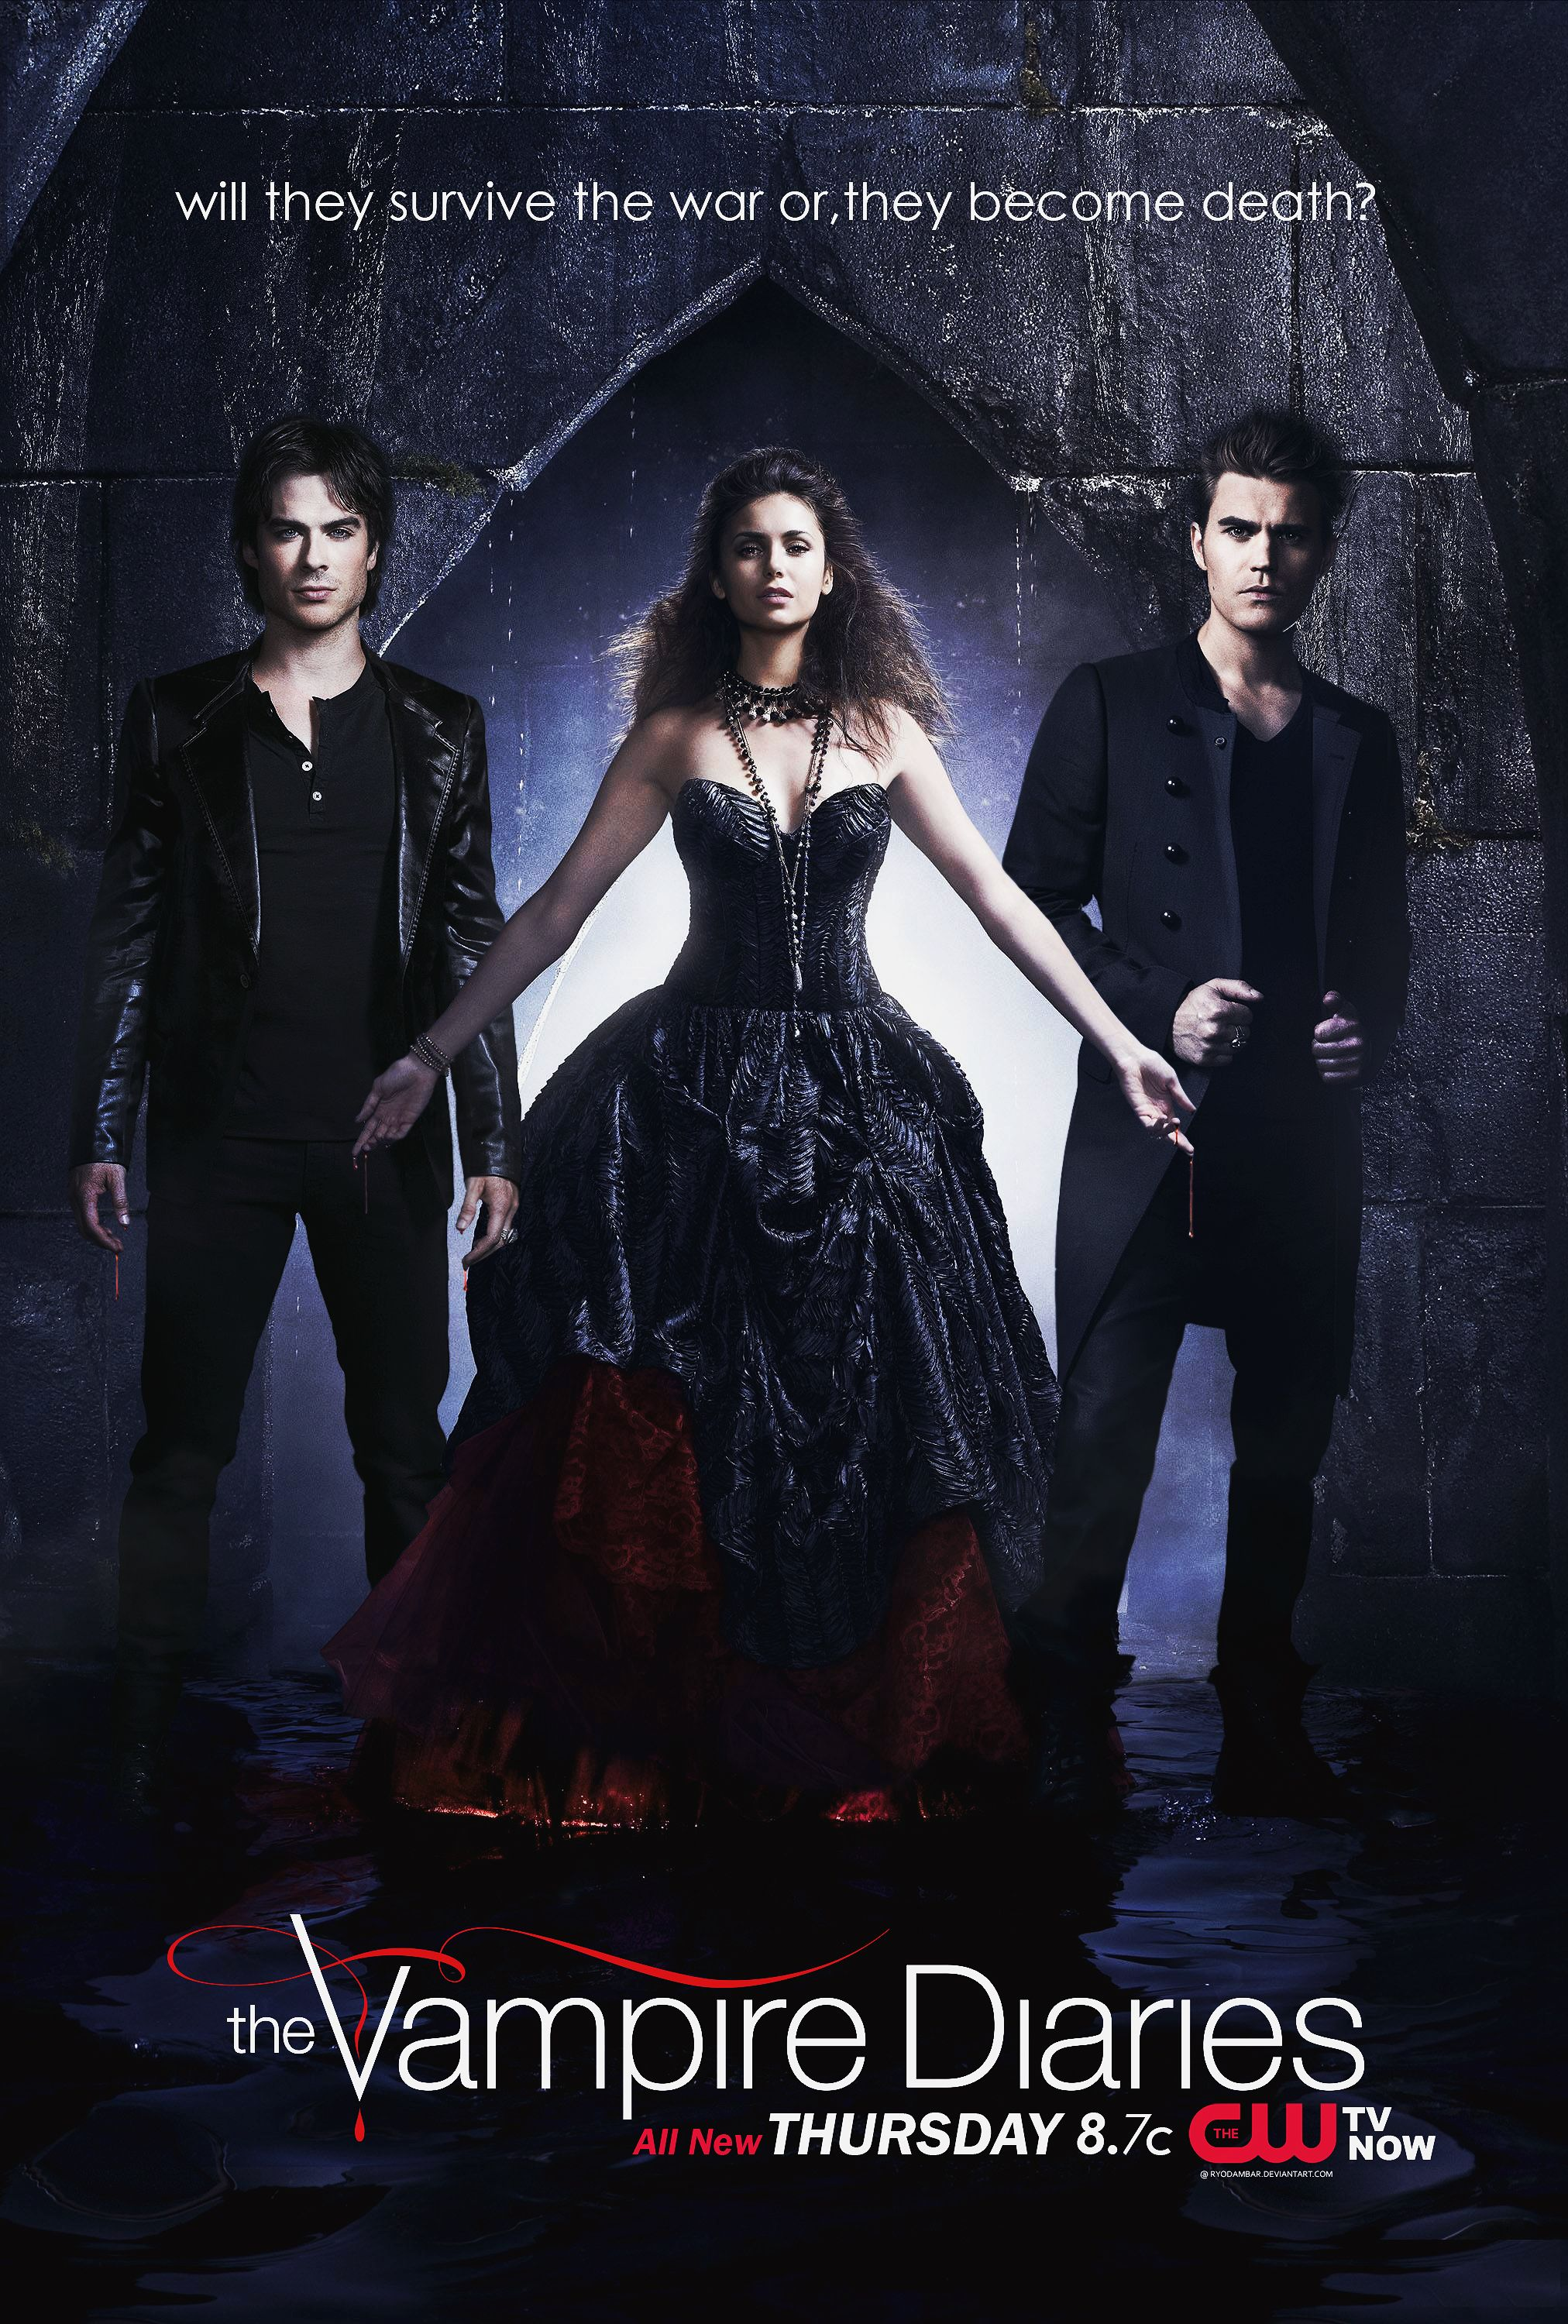 Image result for the vampire diaries season 4 poster